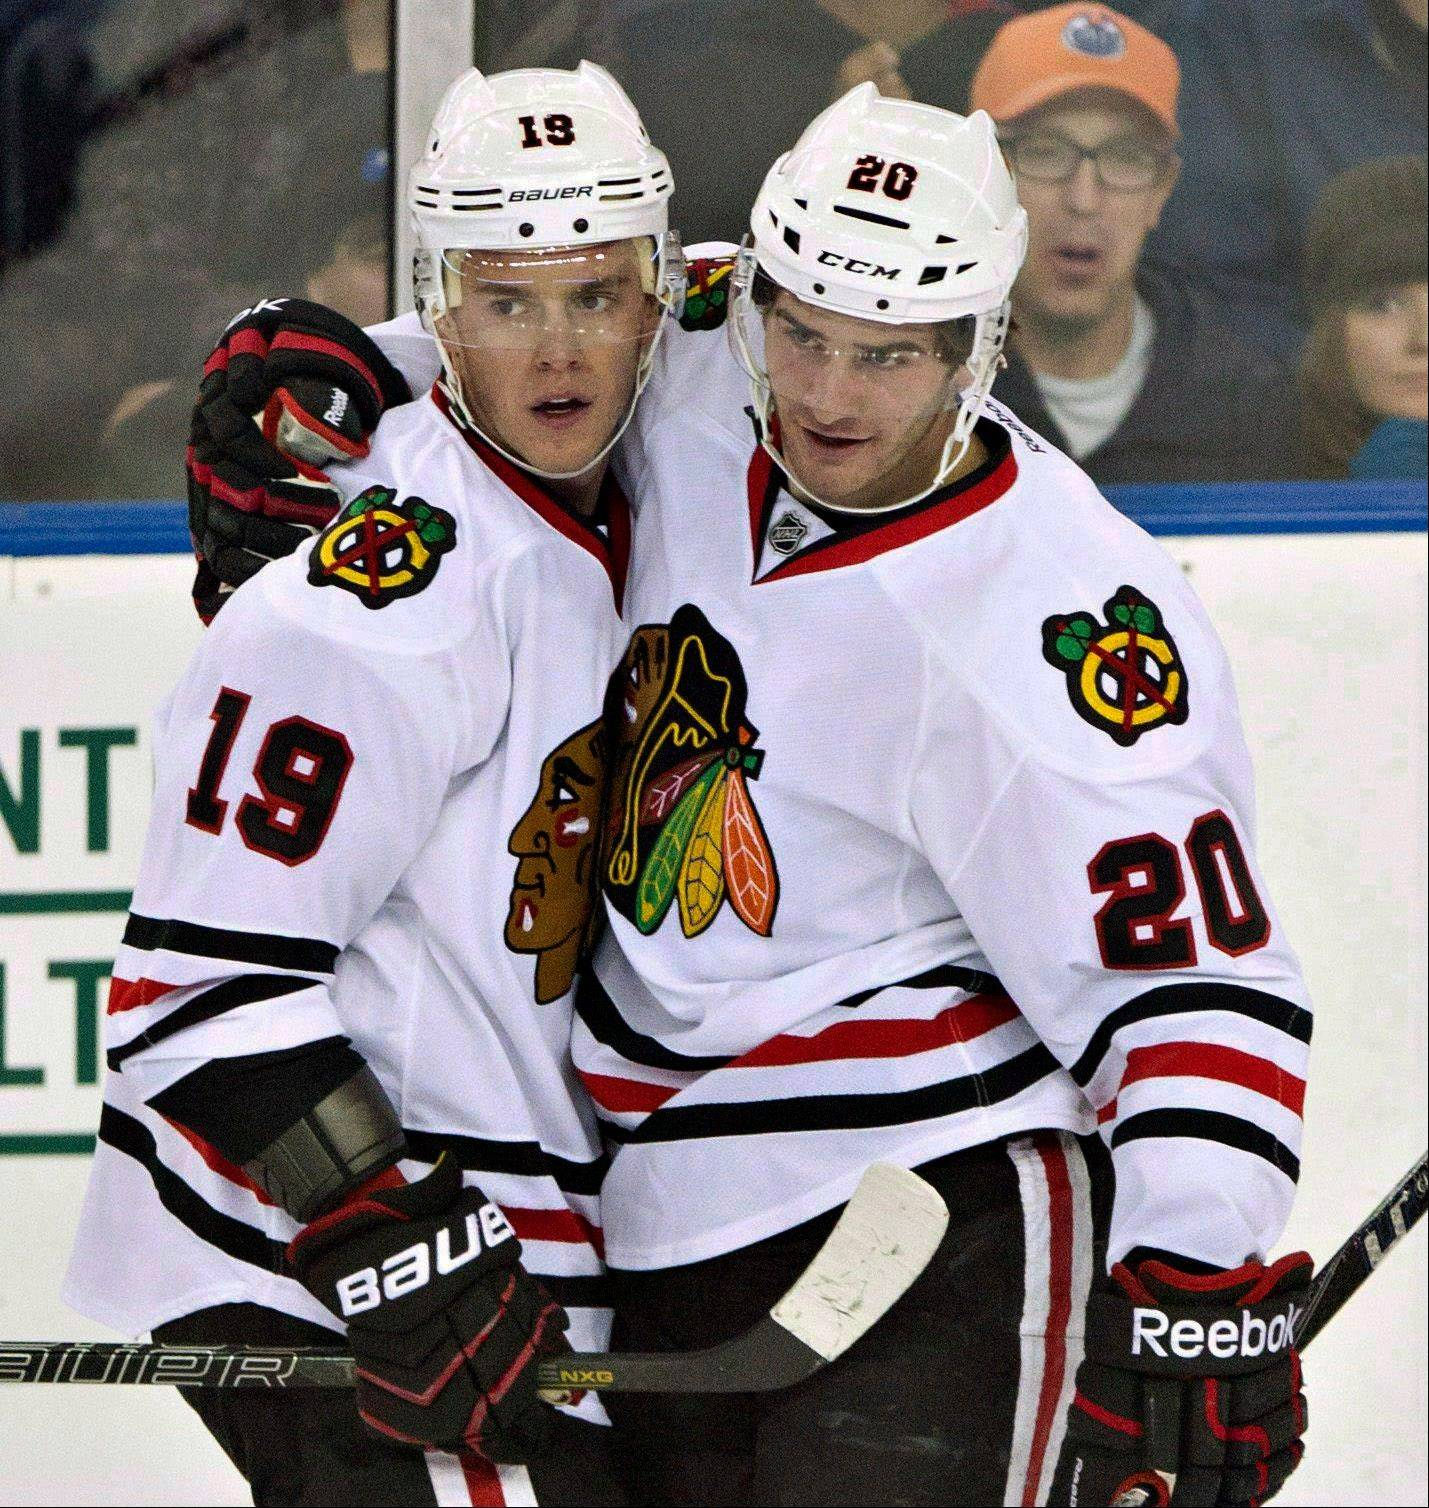 Quenneville sends clear message to Saad, Stalberg